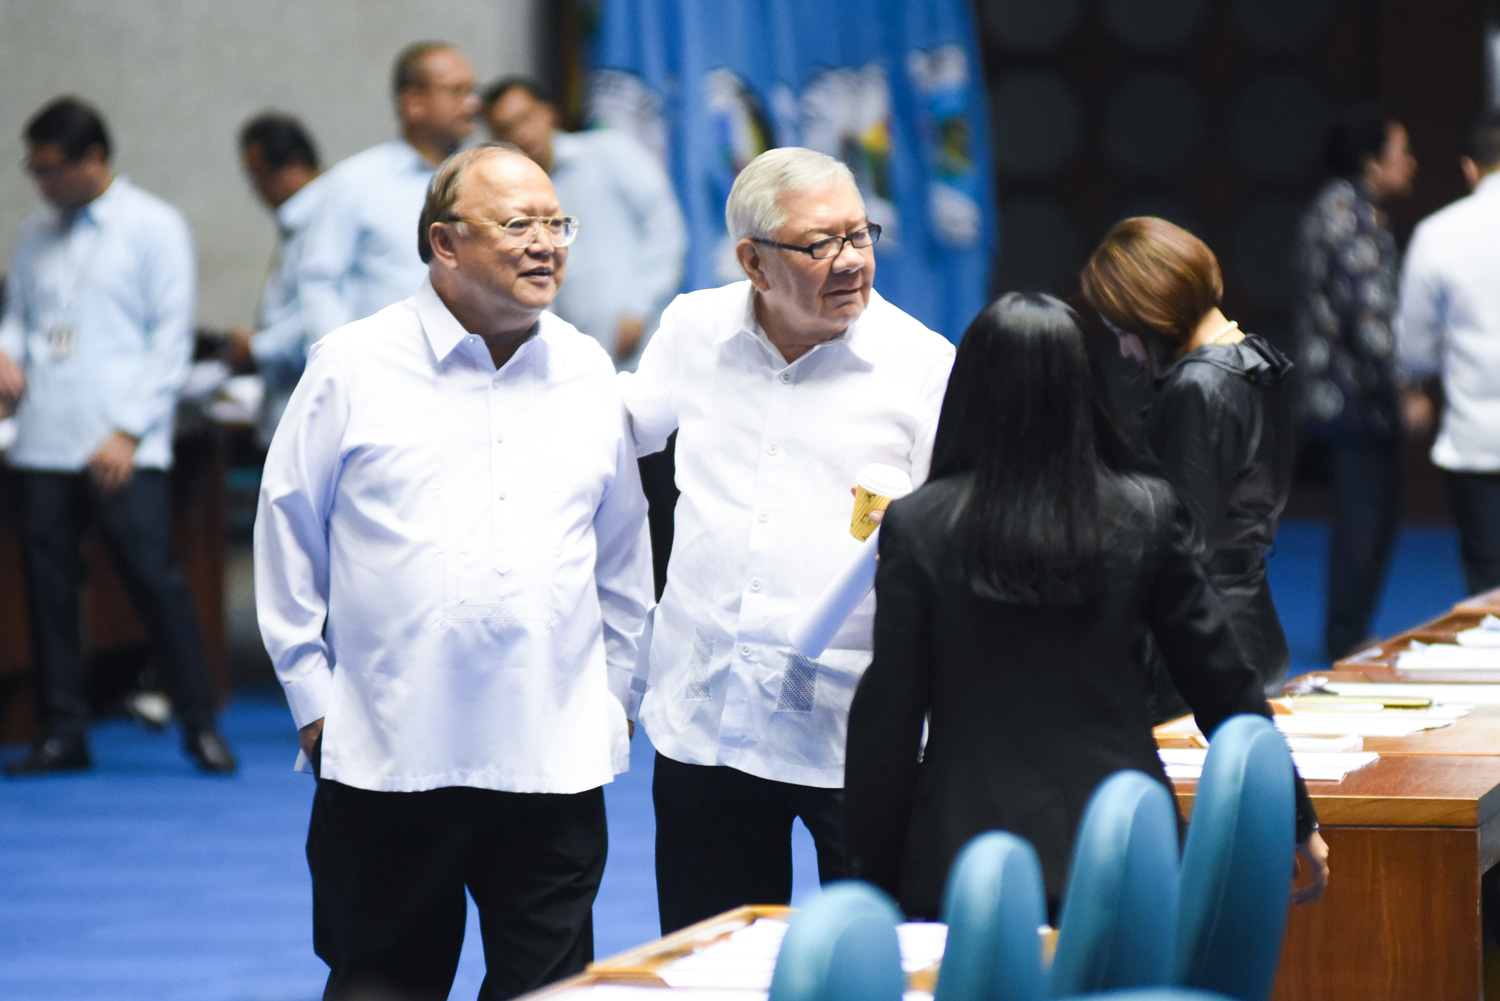 LP LEADER. Outgoing House Speaker Feliciano Belmonte said he might lead the members of the LP who will join the majority coalition if their members won't be asked to jump ship to PDP-Laban. Photo by Martin San Diego/Rappler